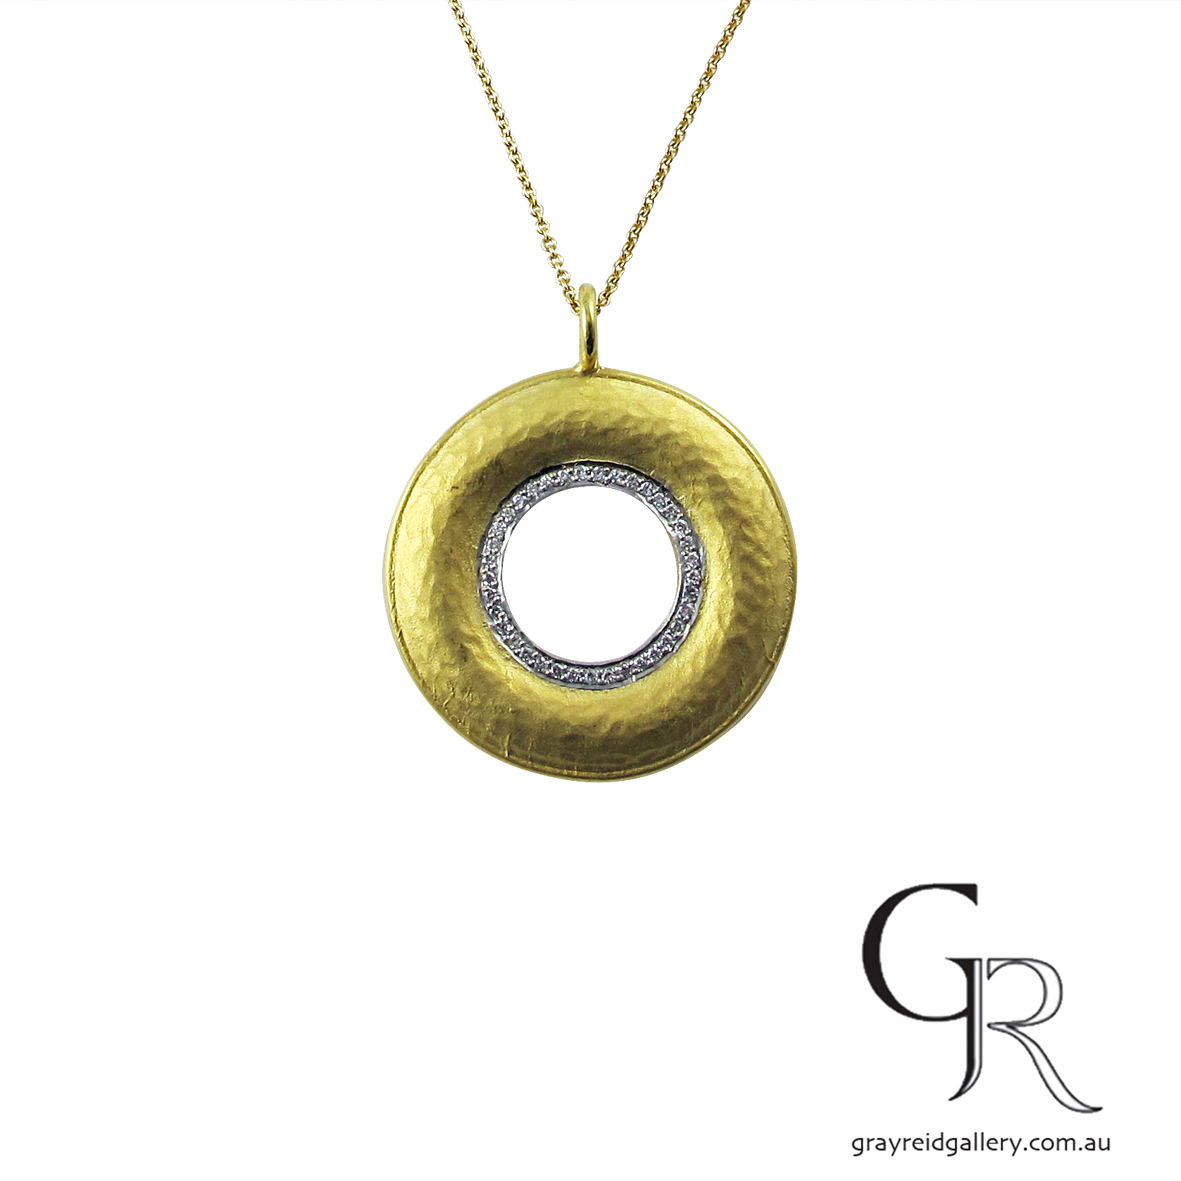 gold pendant brushed finish.jpg